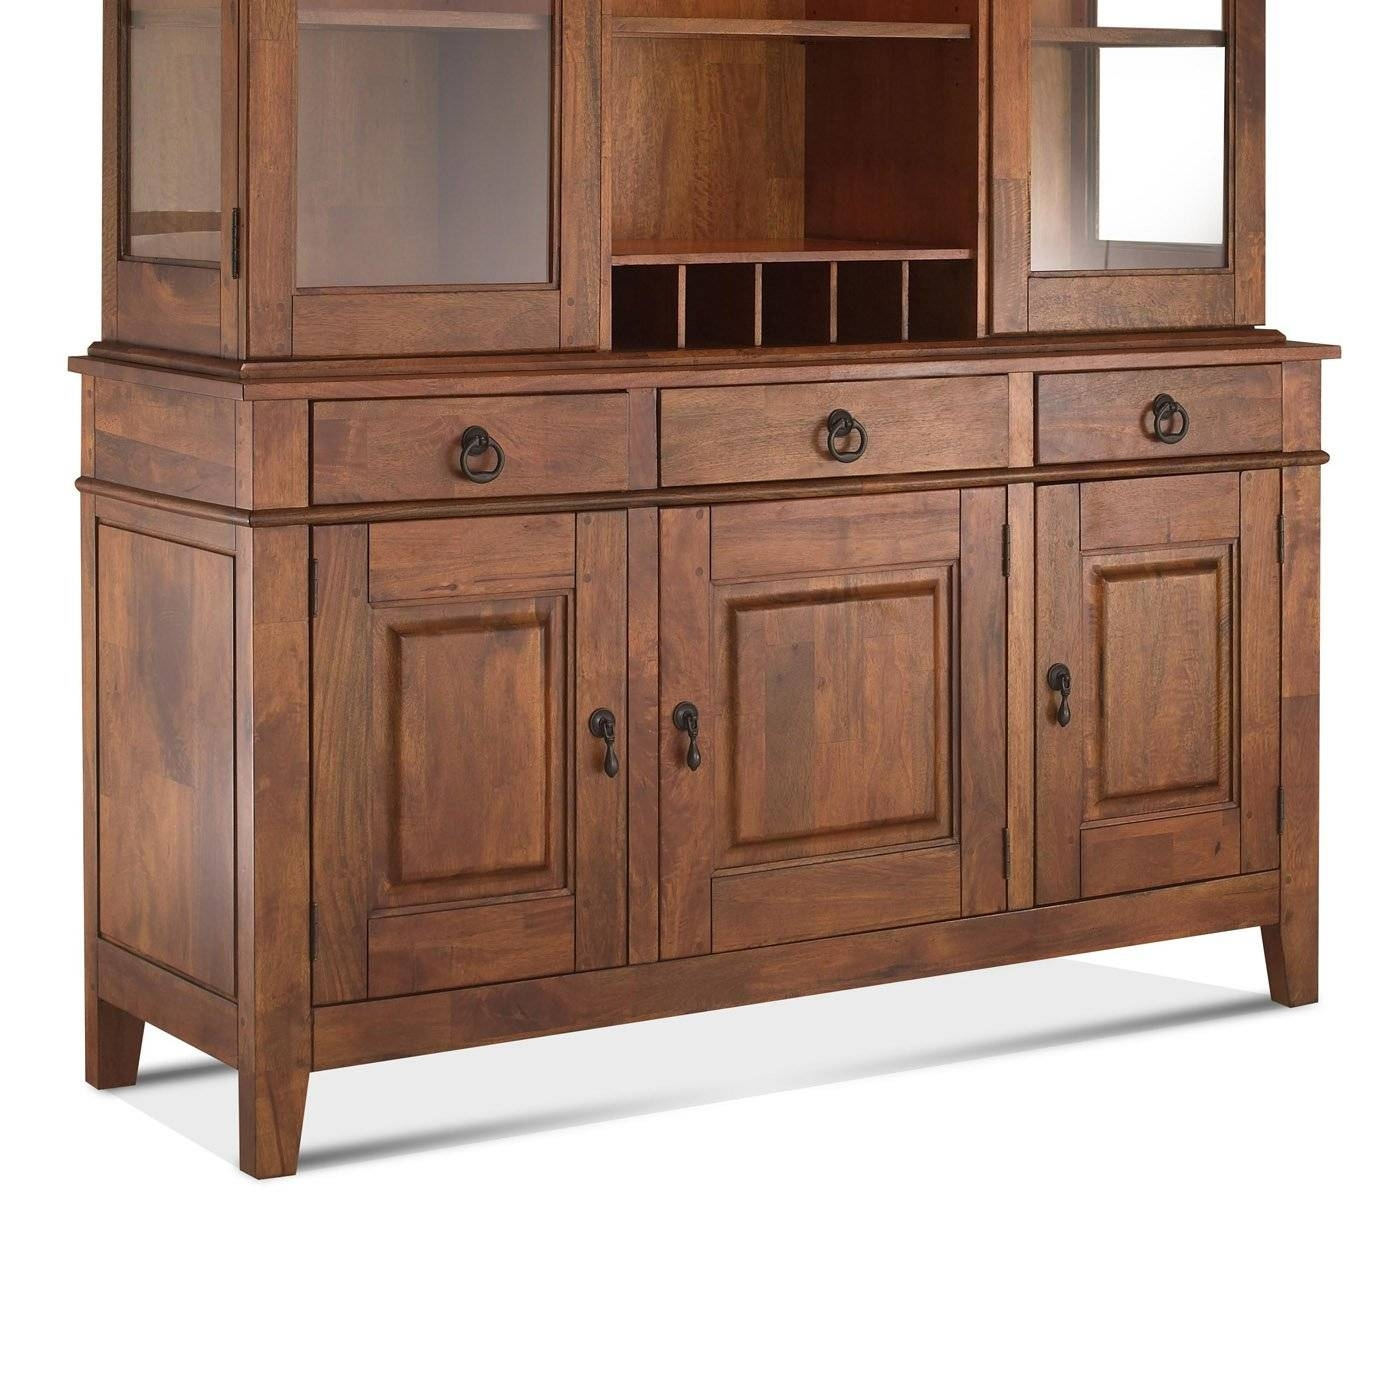 dining room credenza hutch. inspiration about dining room credenza hutch computer with sideboards for t